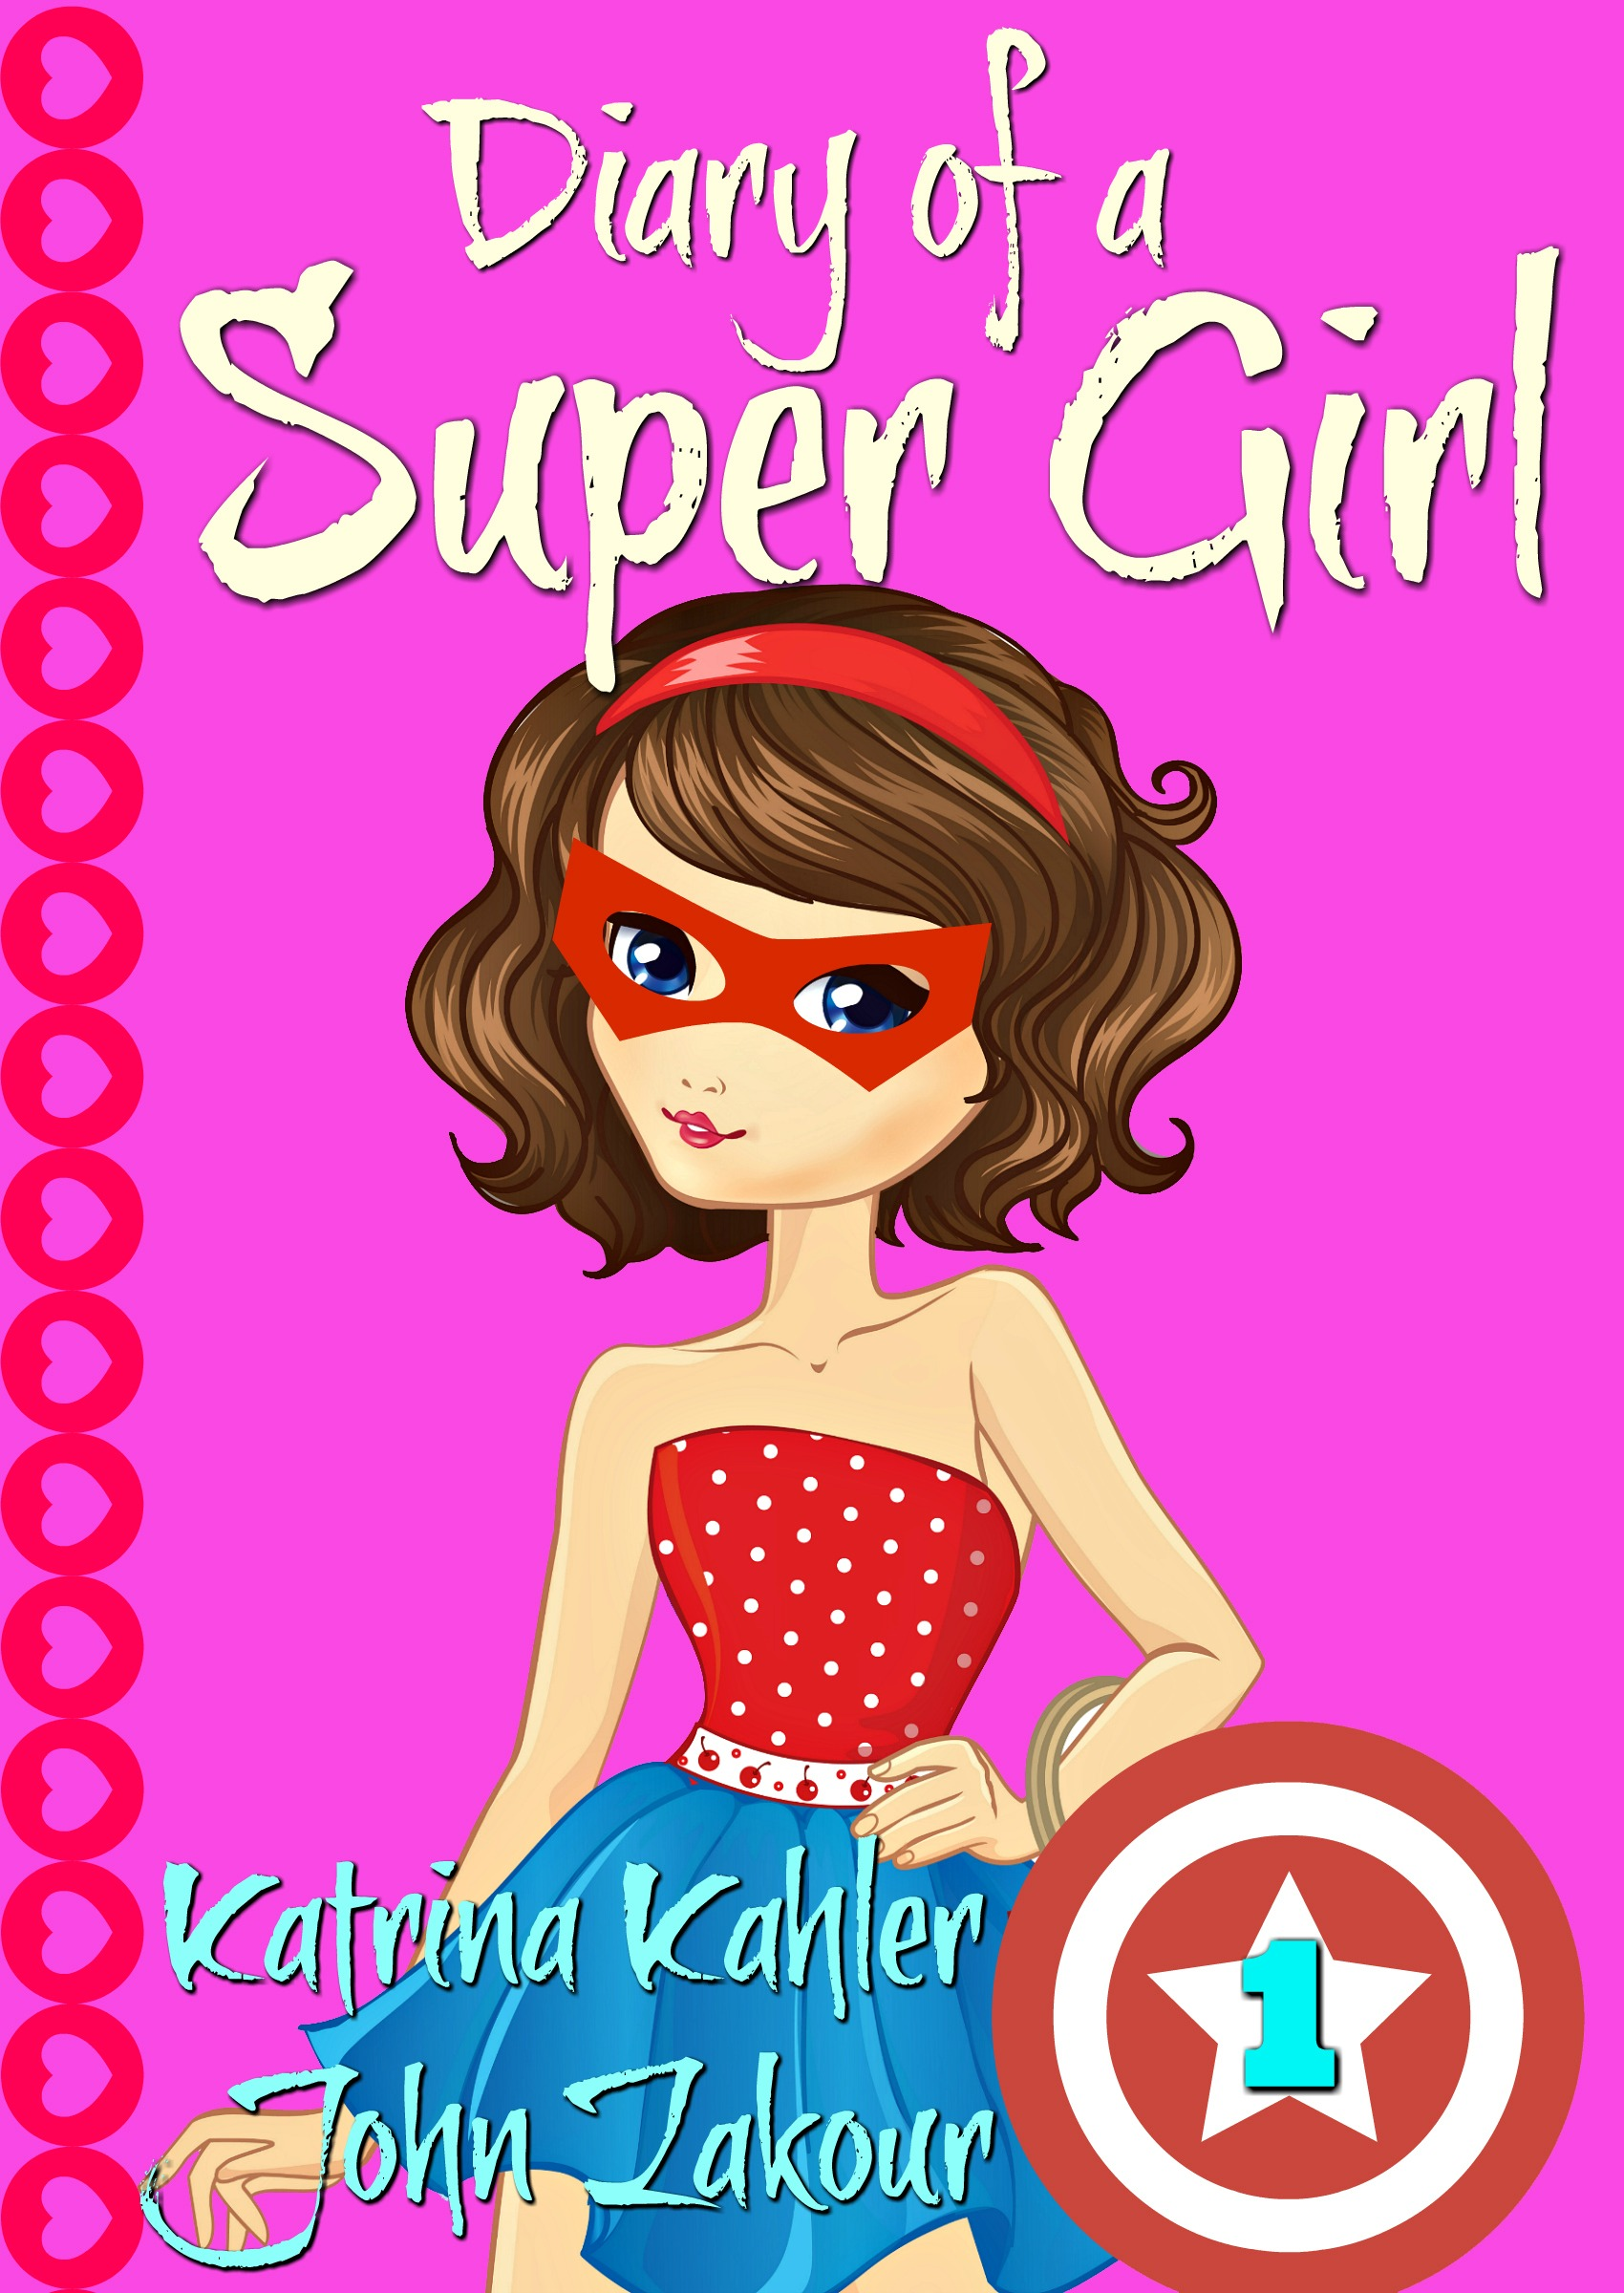 Diary of a super girl - book 1